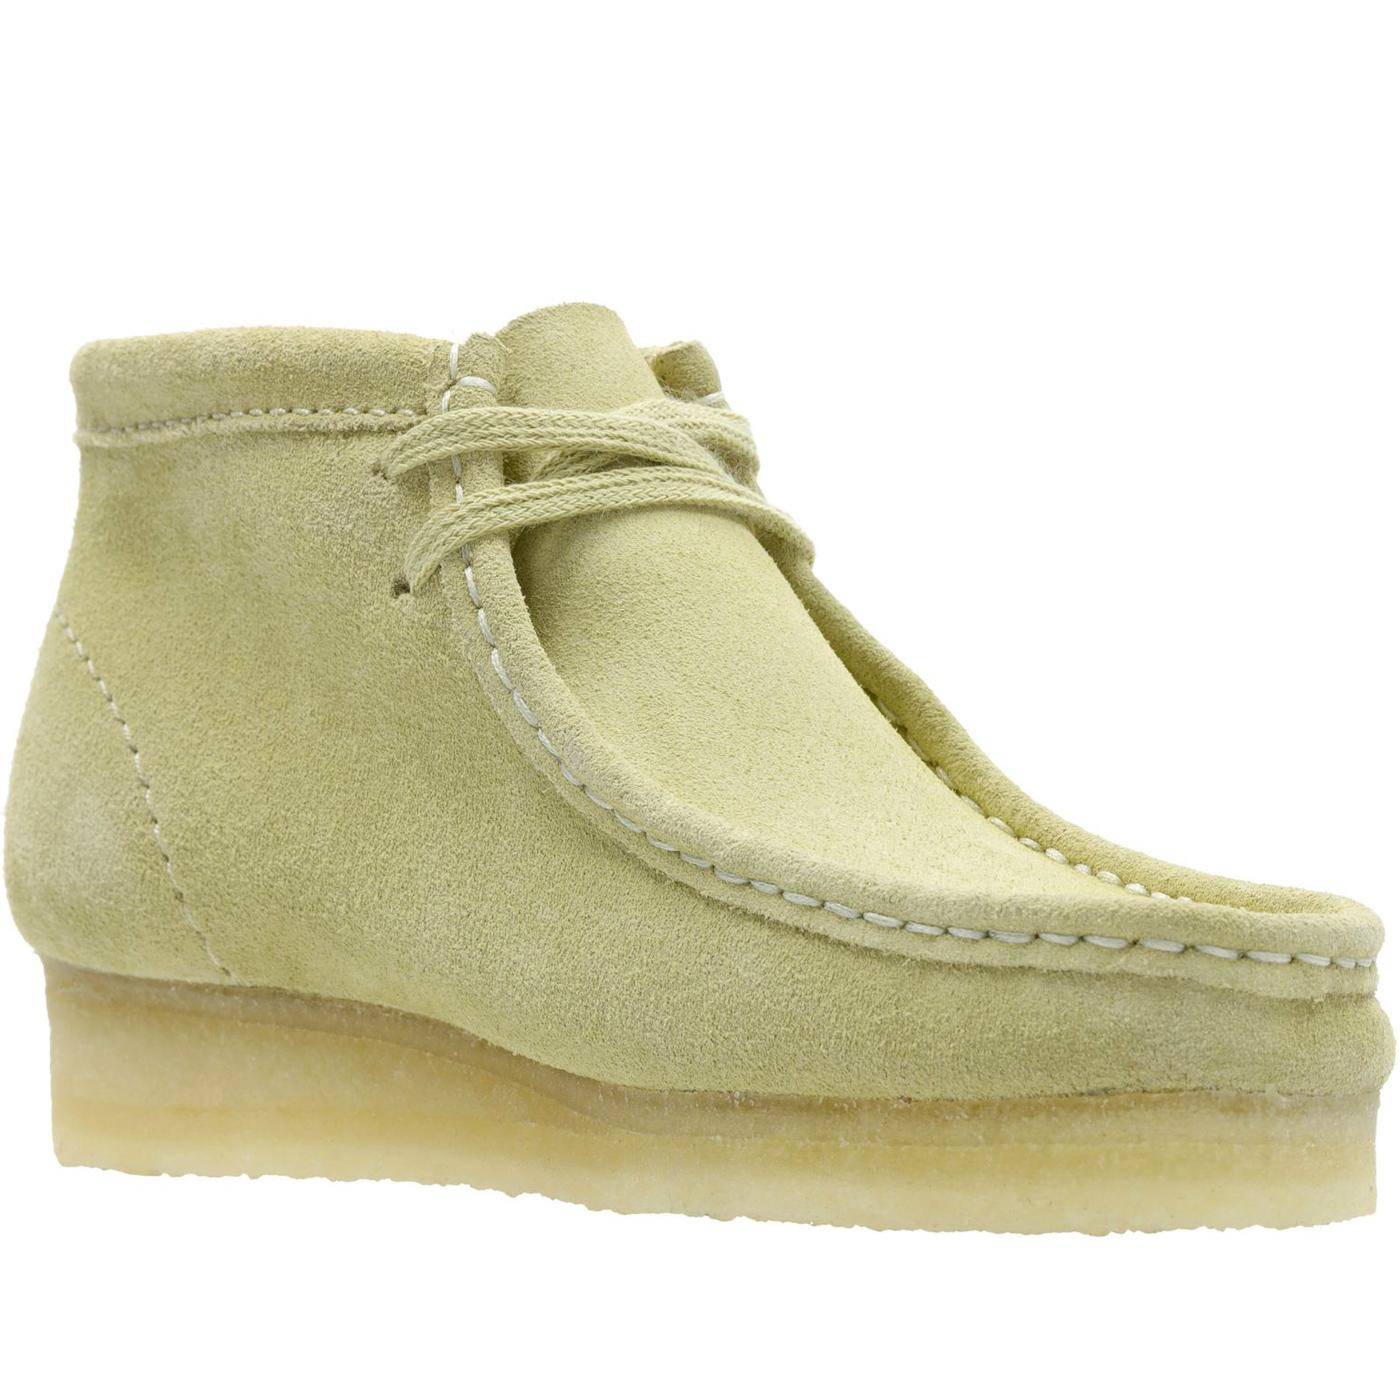 Wallabee Boot CLARKS ORIGINALS Maple Suede Boots